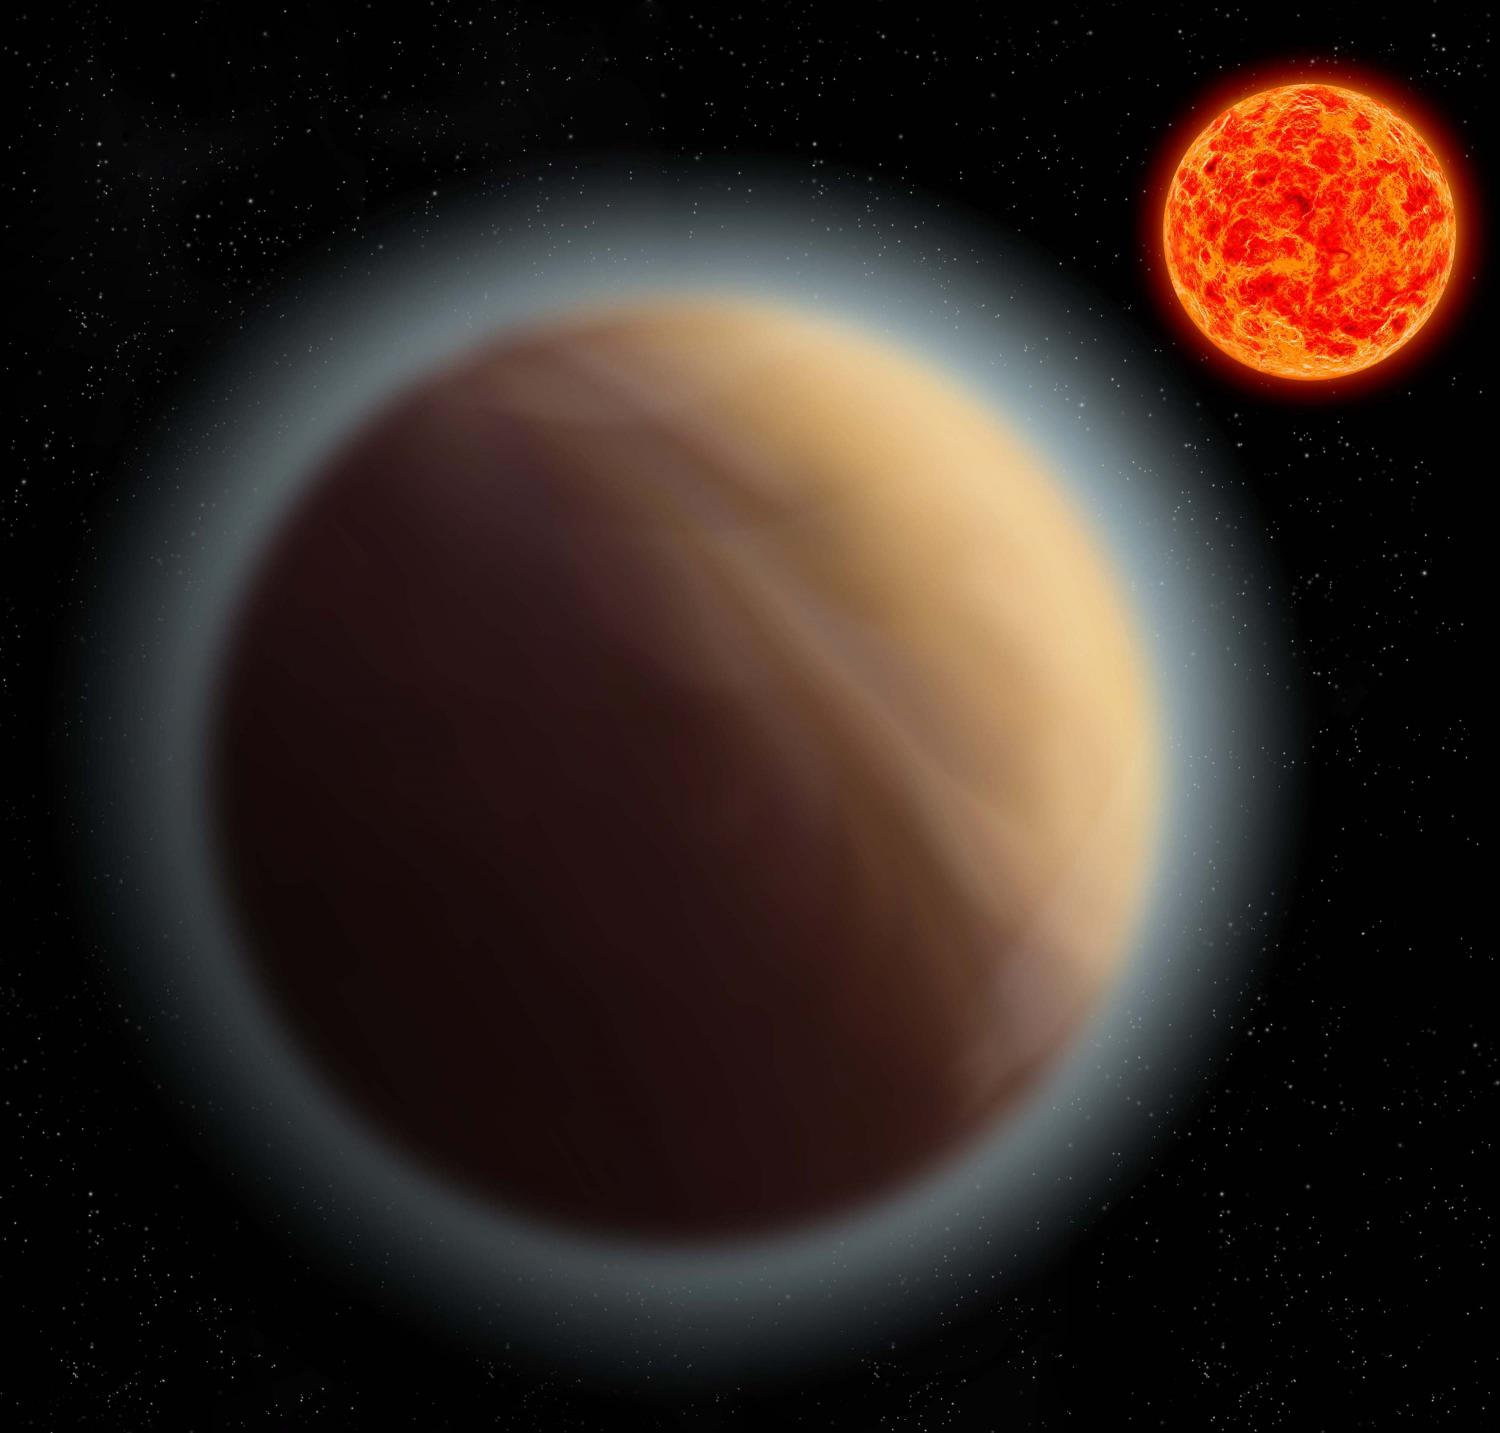 Astronomers confirm atmosphere around the super-Earth